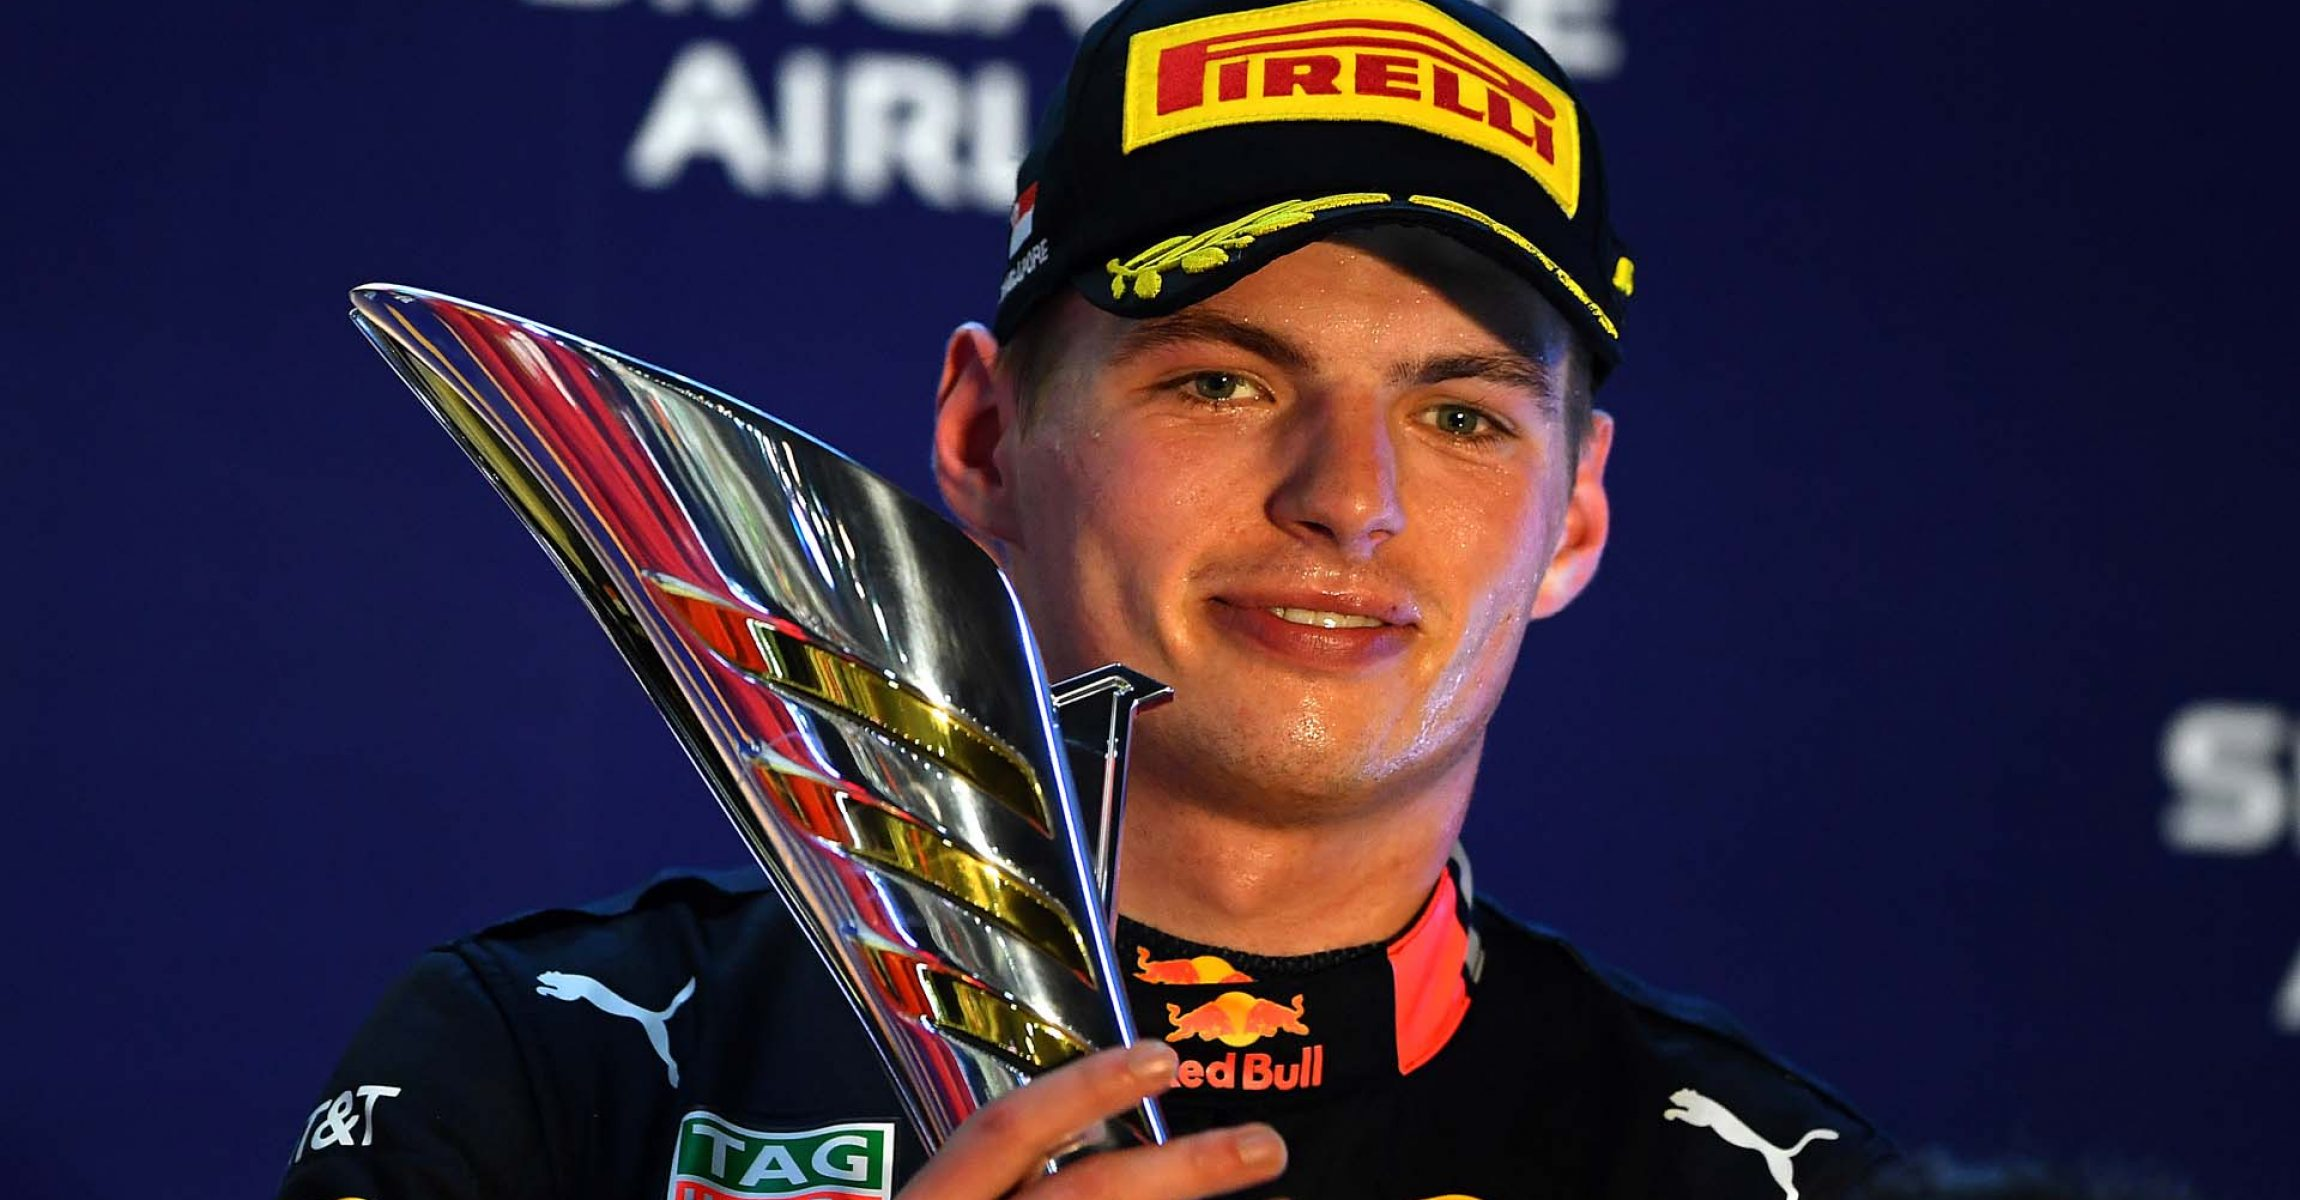 SINGAPORE, SINGAPORE - SEPTEMBER 22: Third placed Max Verstappen of Netherlands and Red Bull Racing celebrates on the podium during the F1 Grand Prix of Singapore at Marina Bay Street Circuit on September 22, 2019 in Singapore. (Photo by Clive Mason/Getty Images) // Getty Images / Red Bull Content Pool // AP-21NB2DR391W11 // Usage for editorial use only //